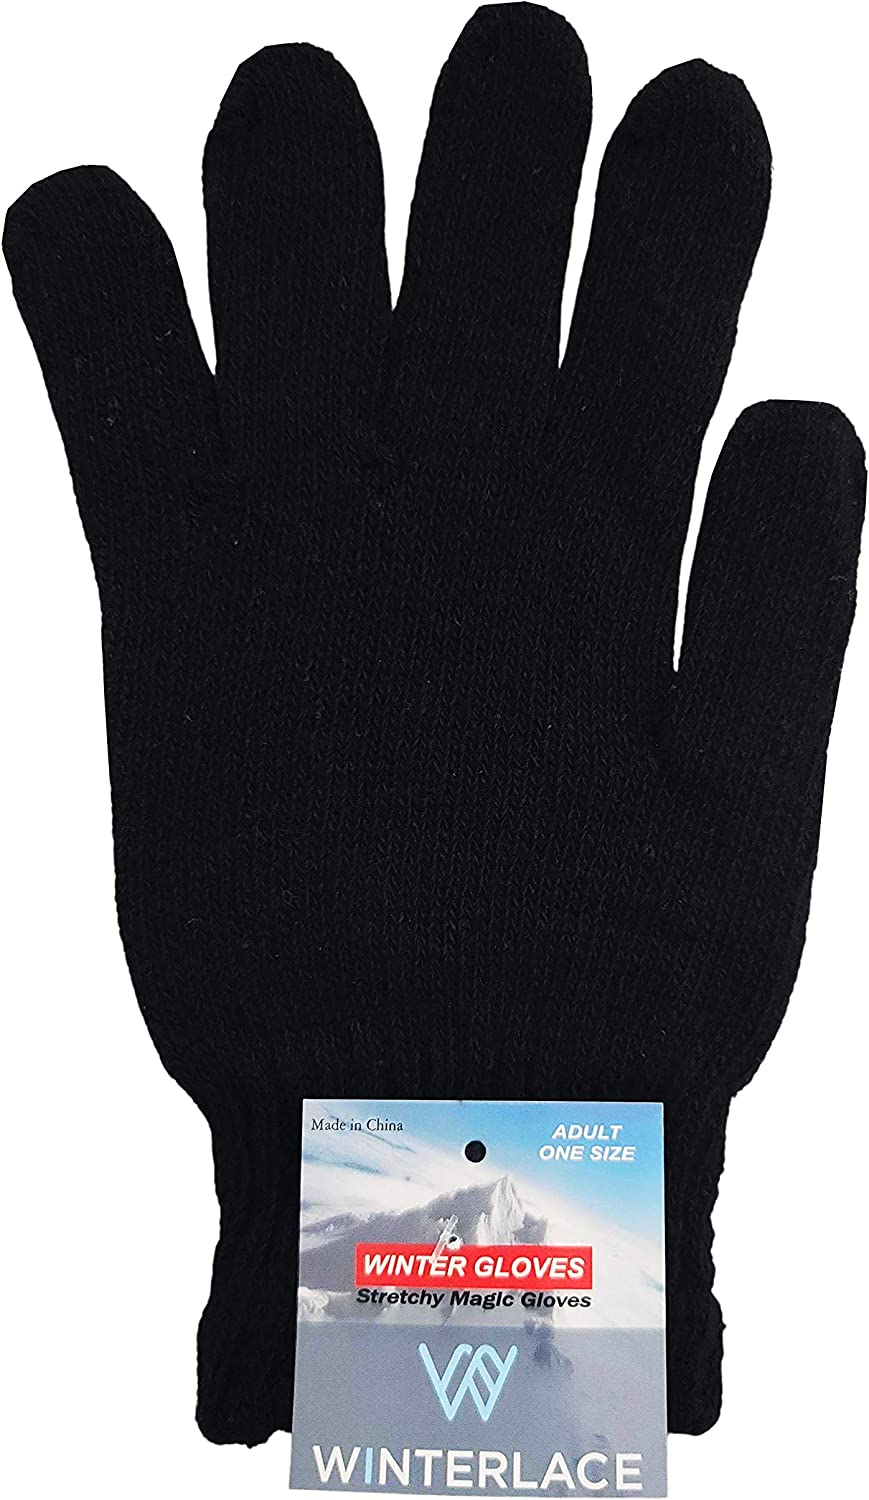 48 Pairs Winter Magic Gloves, Bulk Warm Brushed Interior, Stretchy Assorted Mens Womens